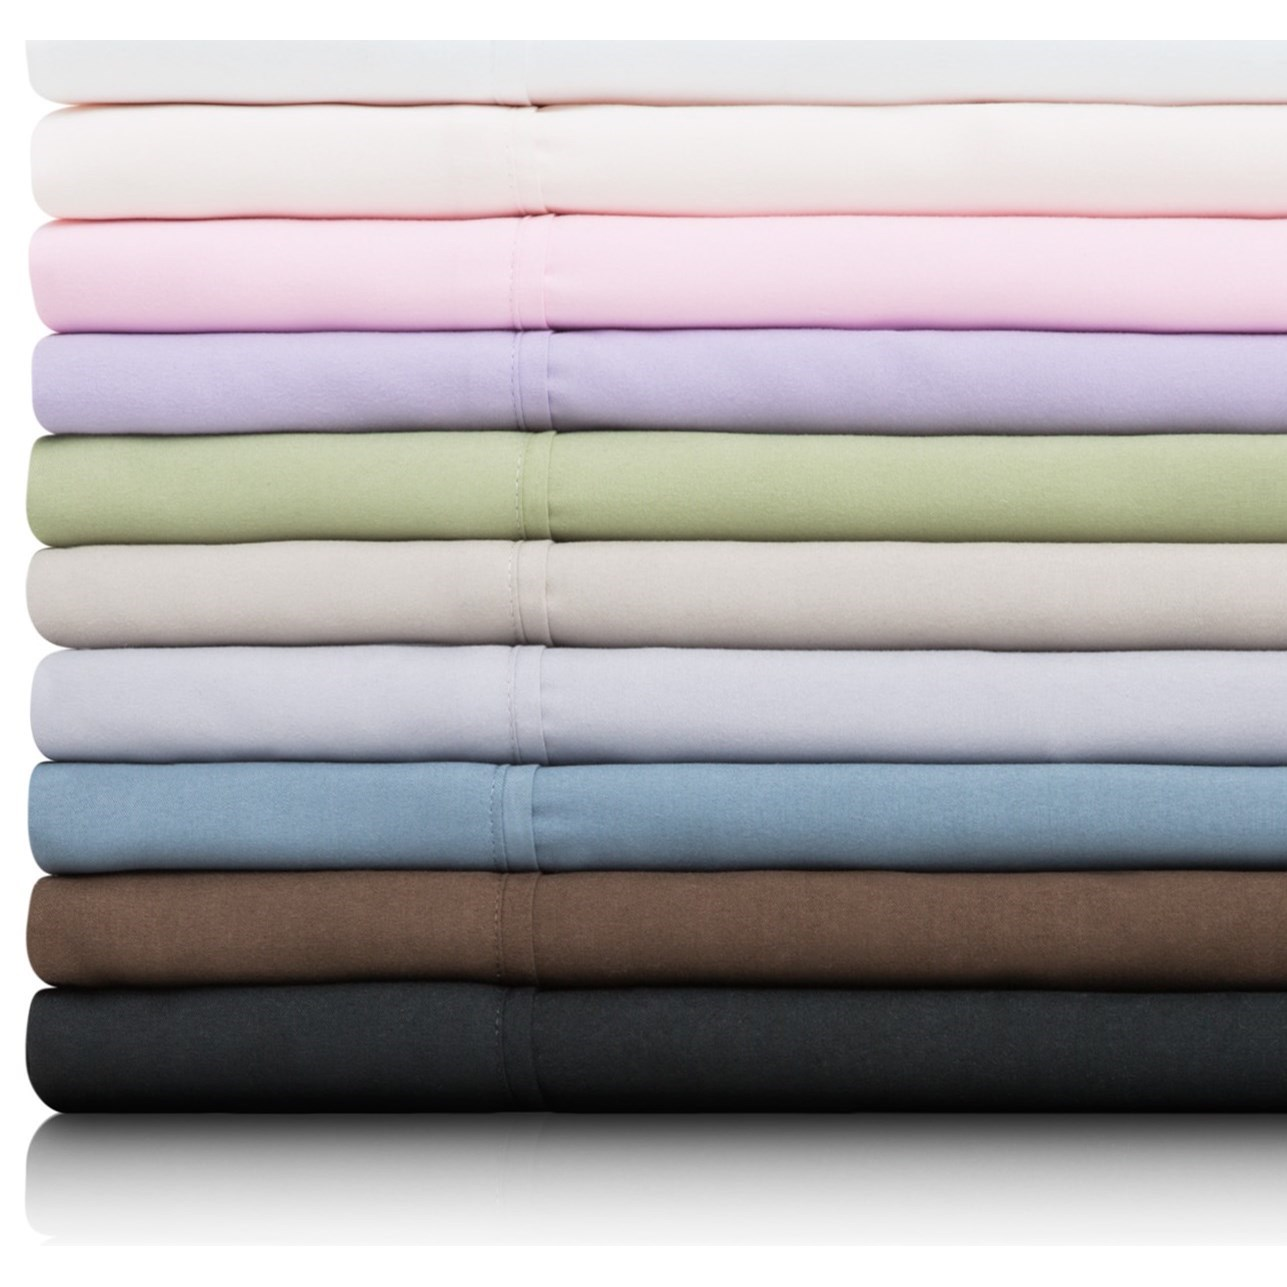 Malouf Brushed Microfiber Queen Woven™ Brushed Microfiber Sheet Set - Item Number: MA90QQBHMS